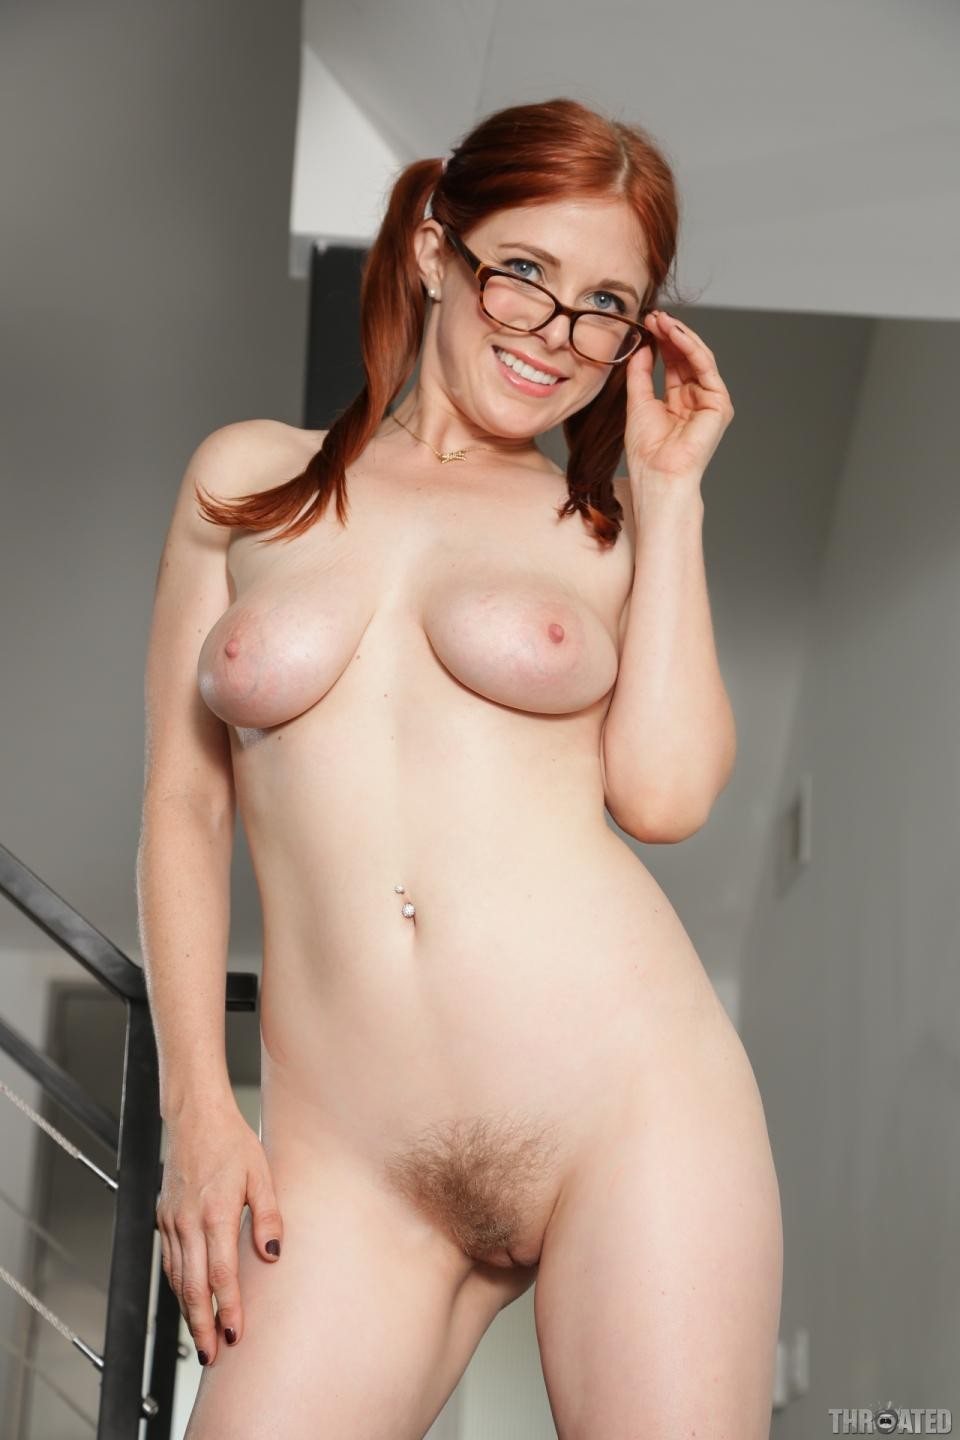 Penny Pax Nude, Naked - Pics And Videos - Imperiodefamosas-1401